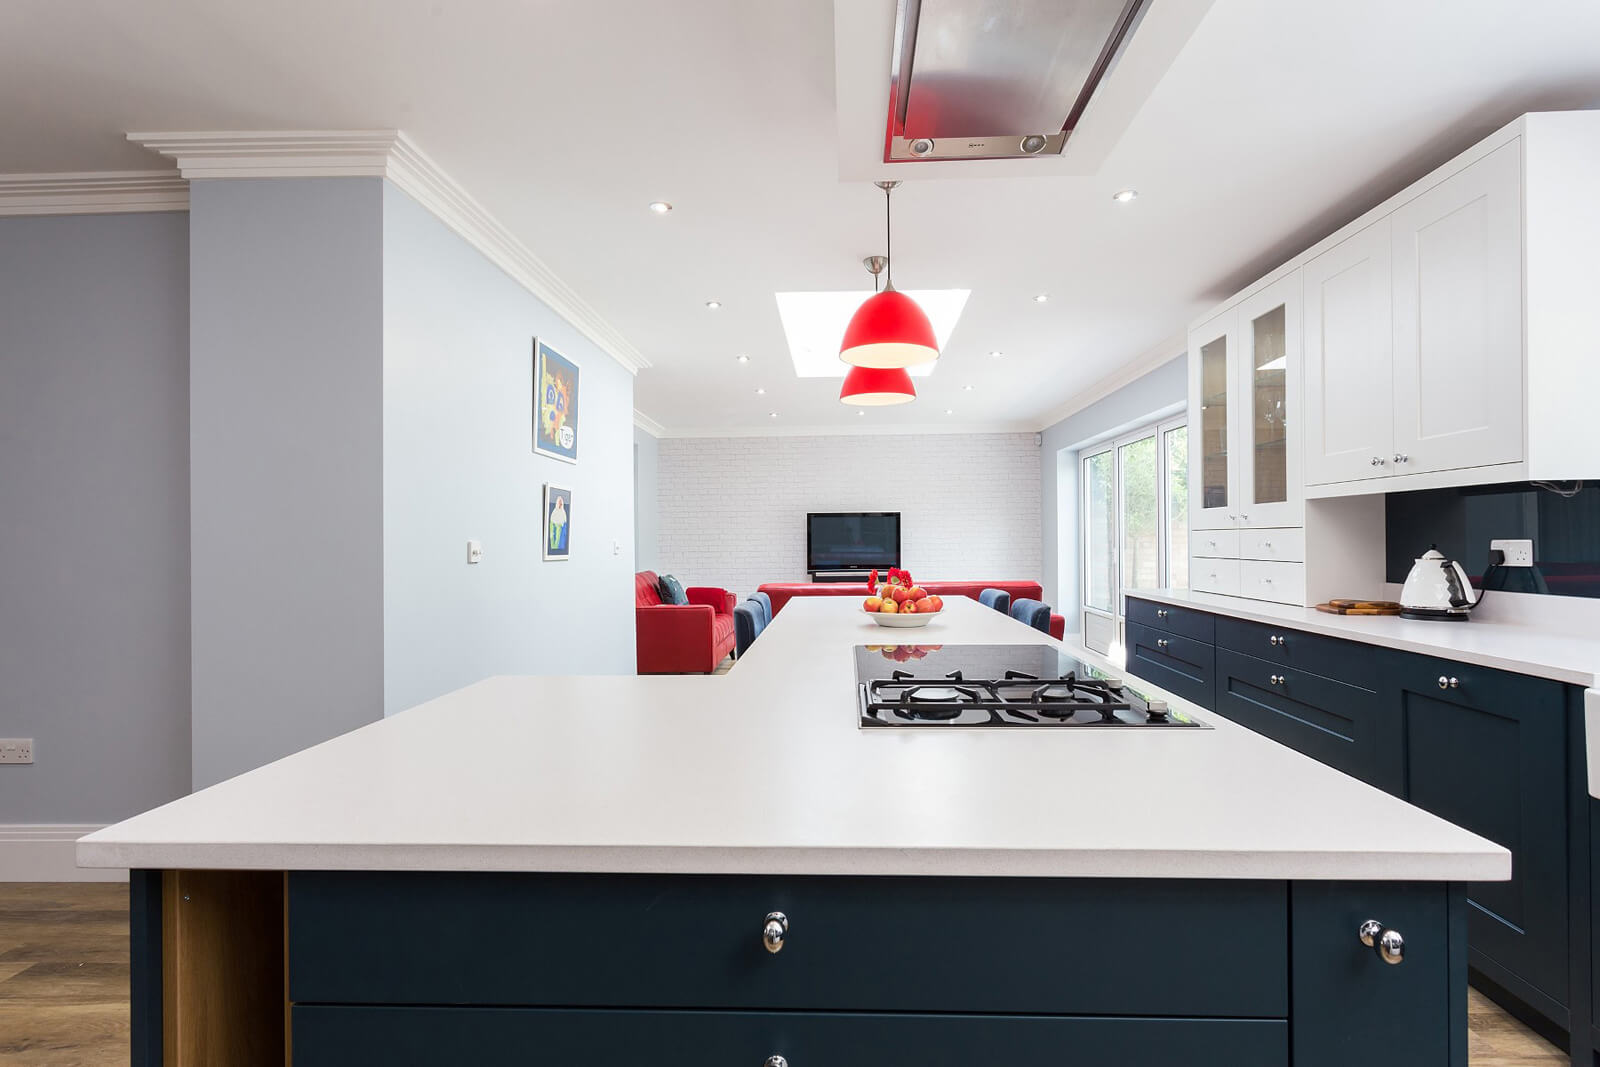 C&C kitchens Hertfordshire - Fitzroy painted shaker in Chalk and Harforth Blue.